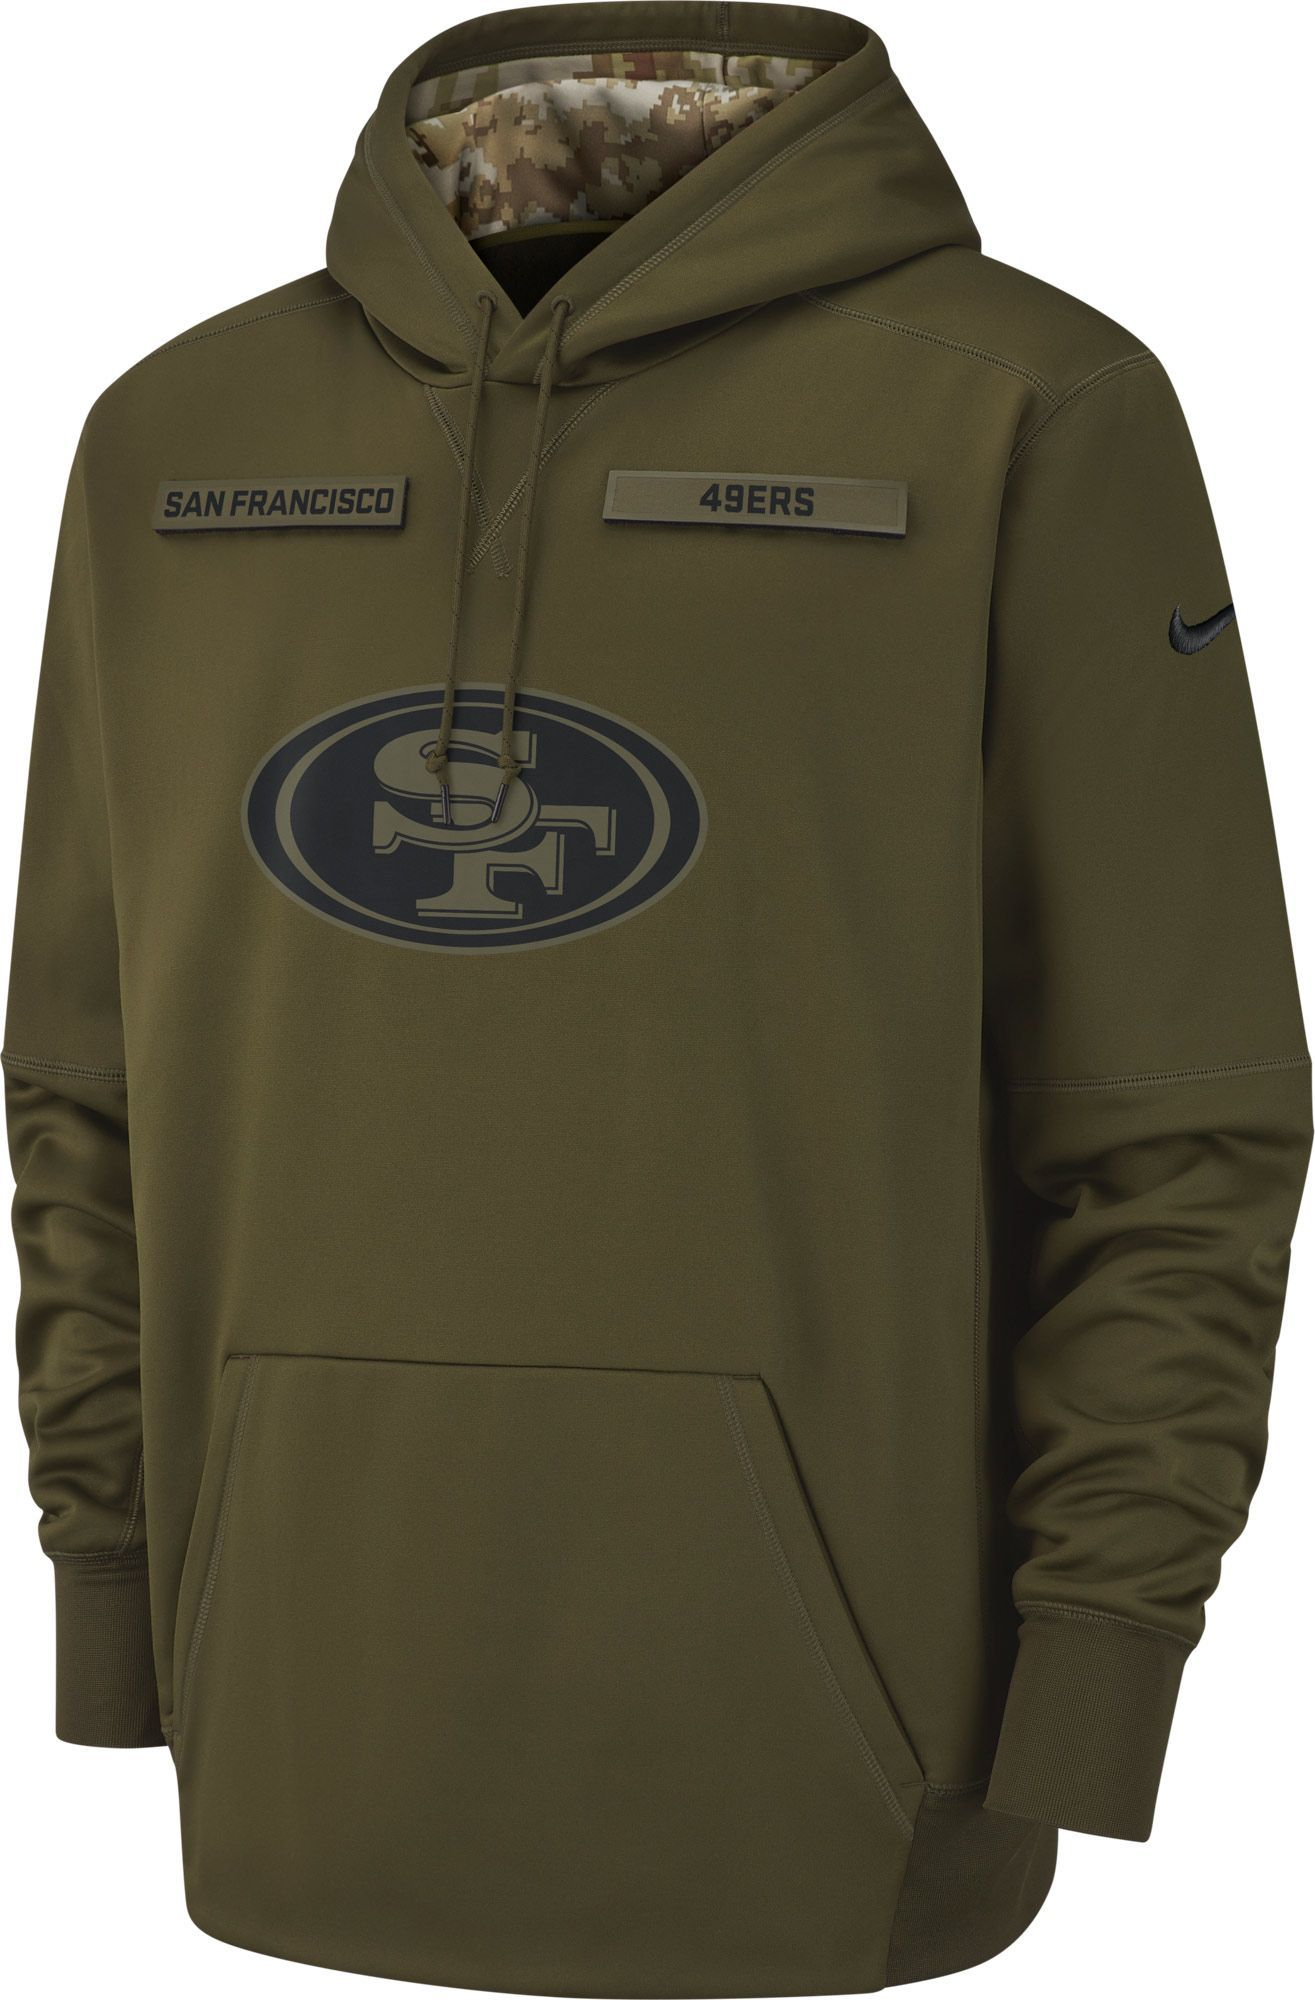 77a173fa4e21 Nike Men s Salute to Service San Francisco Therma-FIT Performance Hoodie